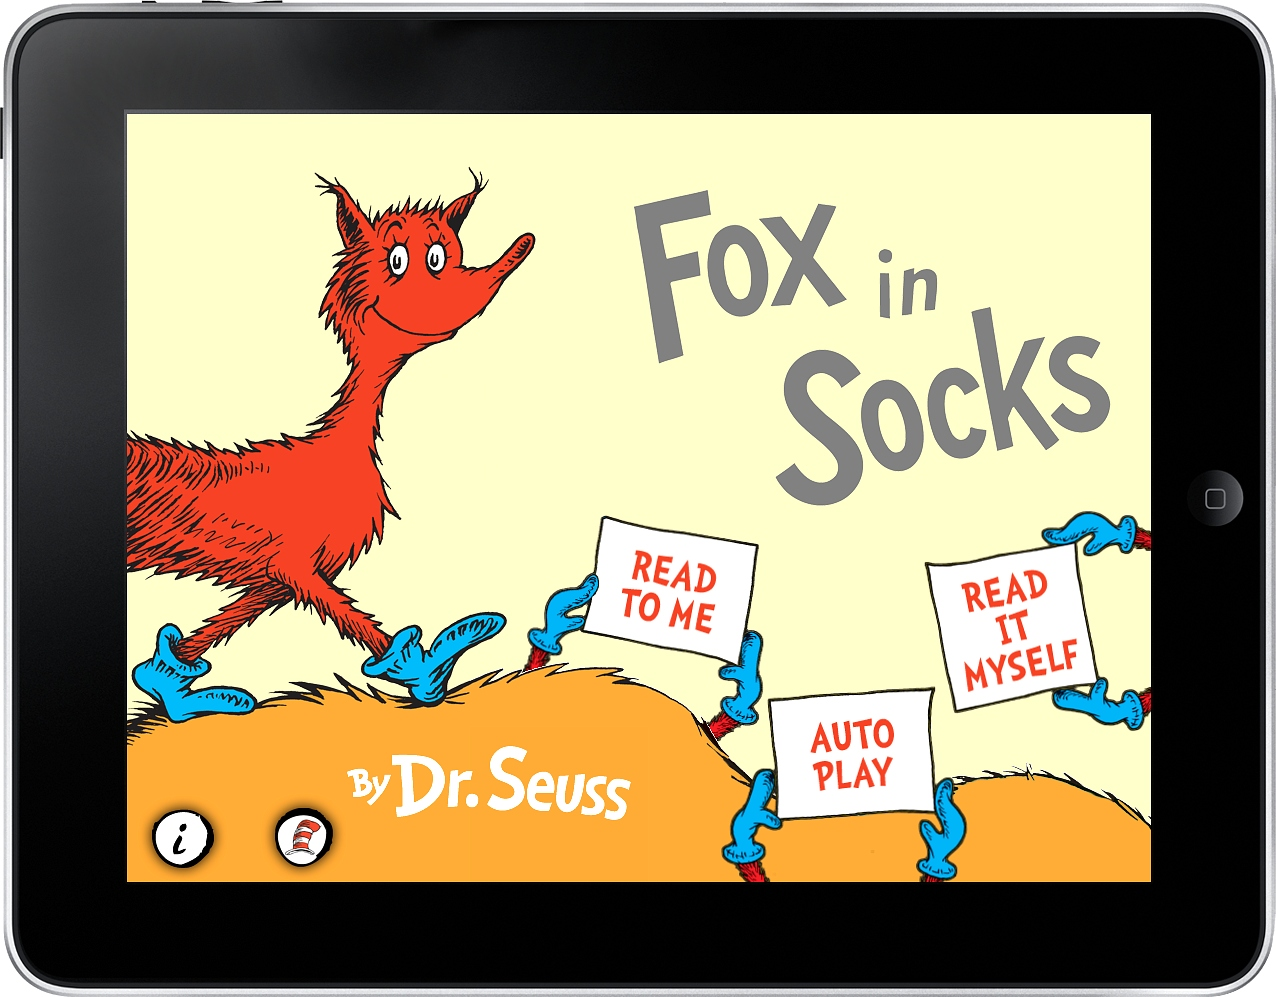 Fox in Socks for the iPad